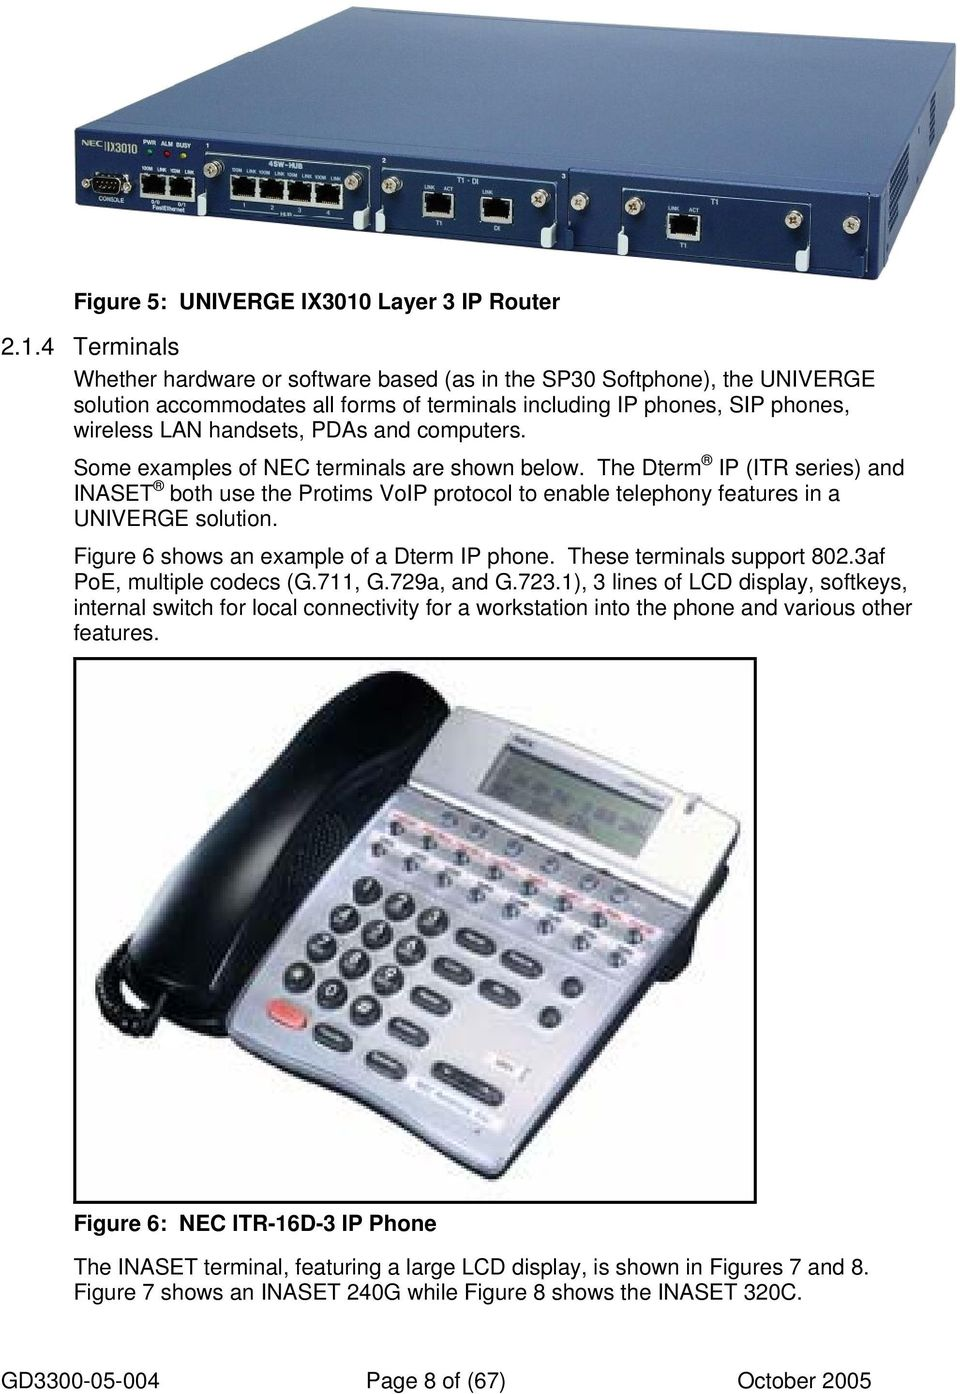 4 Terminals Whether hardware or software based (as in the SP30 Softphone), the UNIVERGE solution accommodates all forms of terminals including IP phones, SIP phones, wireless LAN handsets, PDAs and